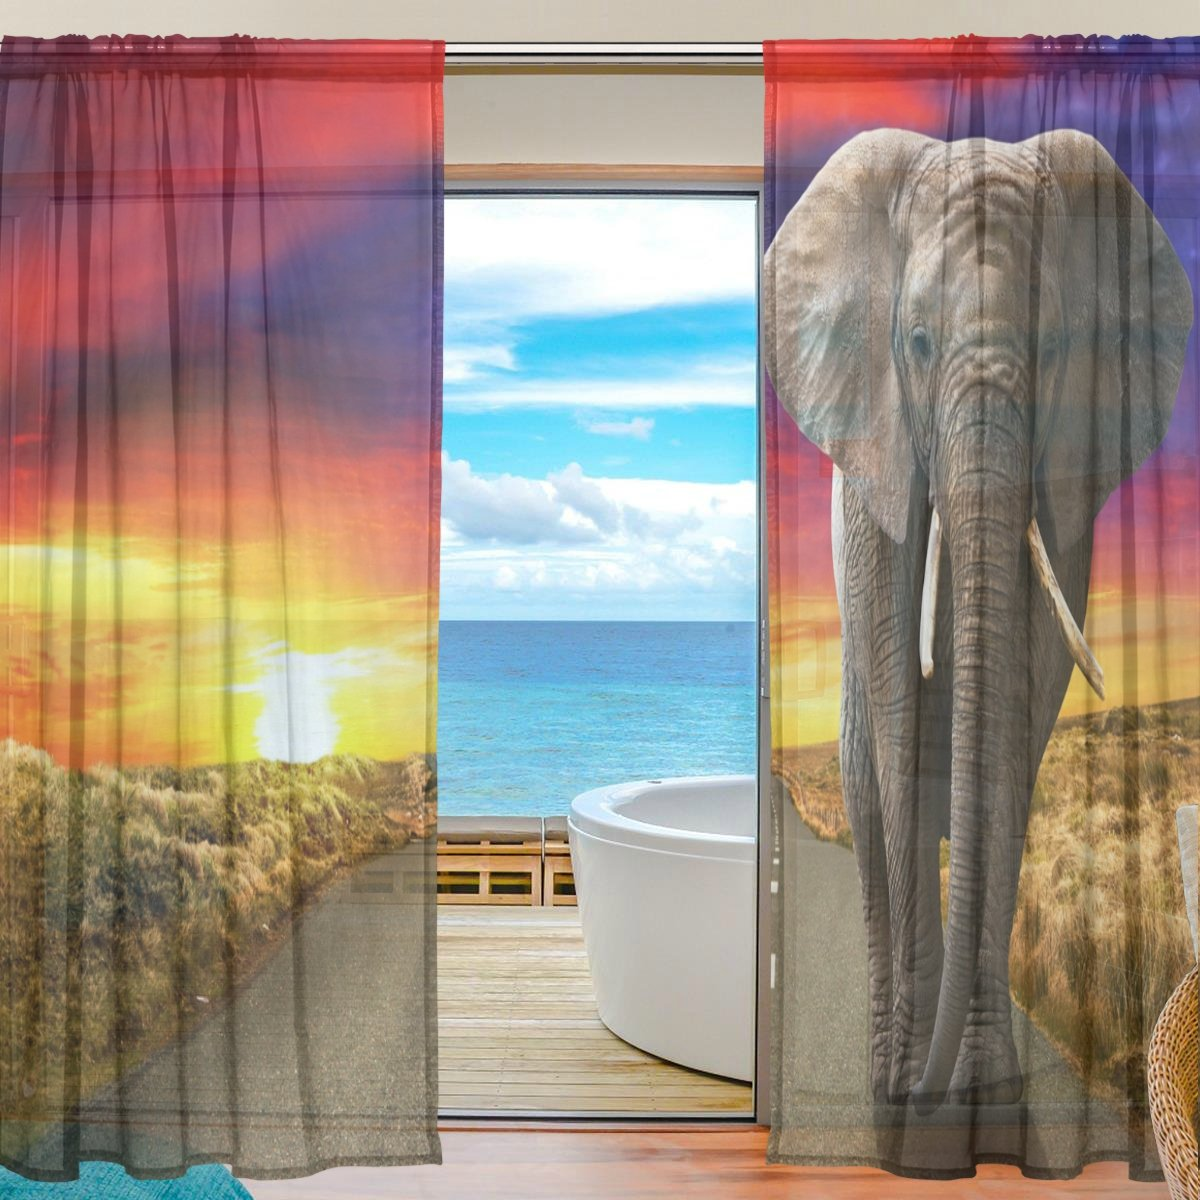 SEULIFE Window Sheer Curtain, African Animal Elephant Sunset Voile Curtain Drapes for Door Kitchen Living Room Bedroom 55x78 inches 2 Panels